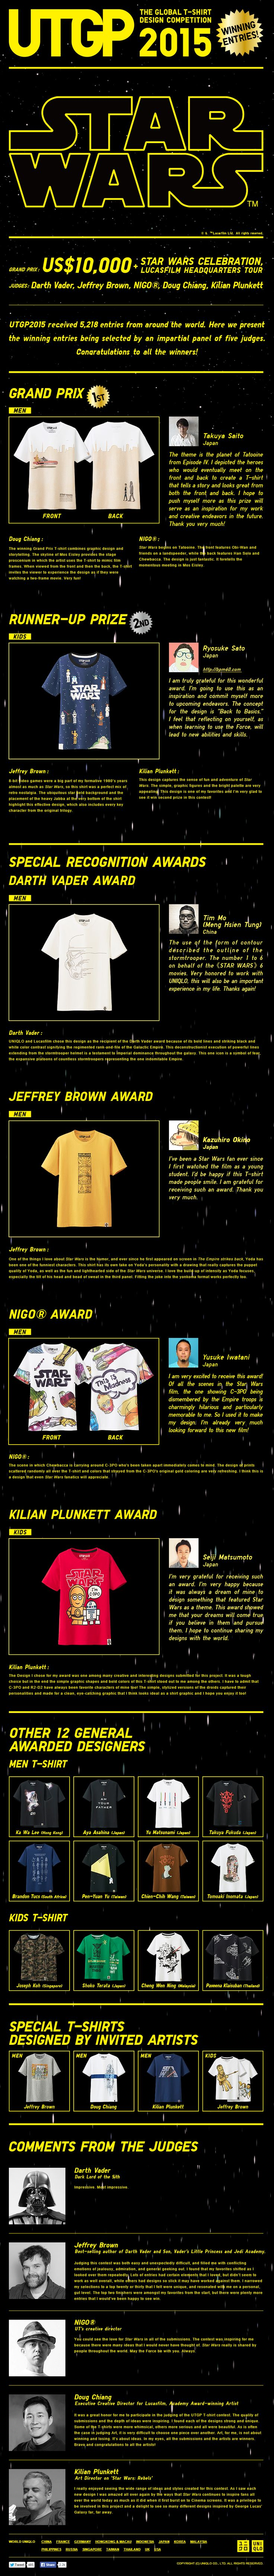 UNIQLO 2015 Star Wars T-Shirt design contest